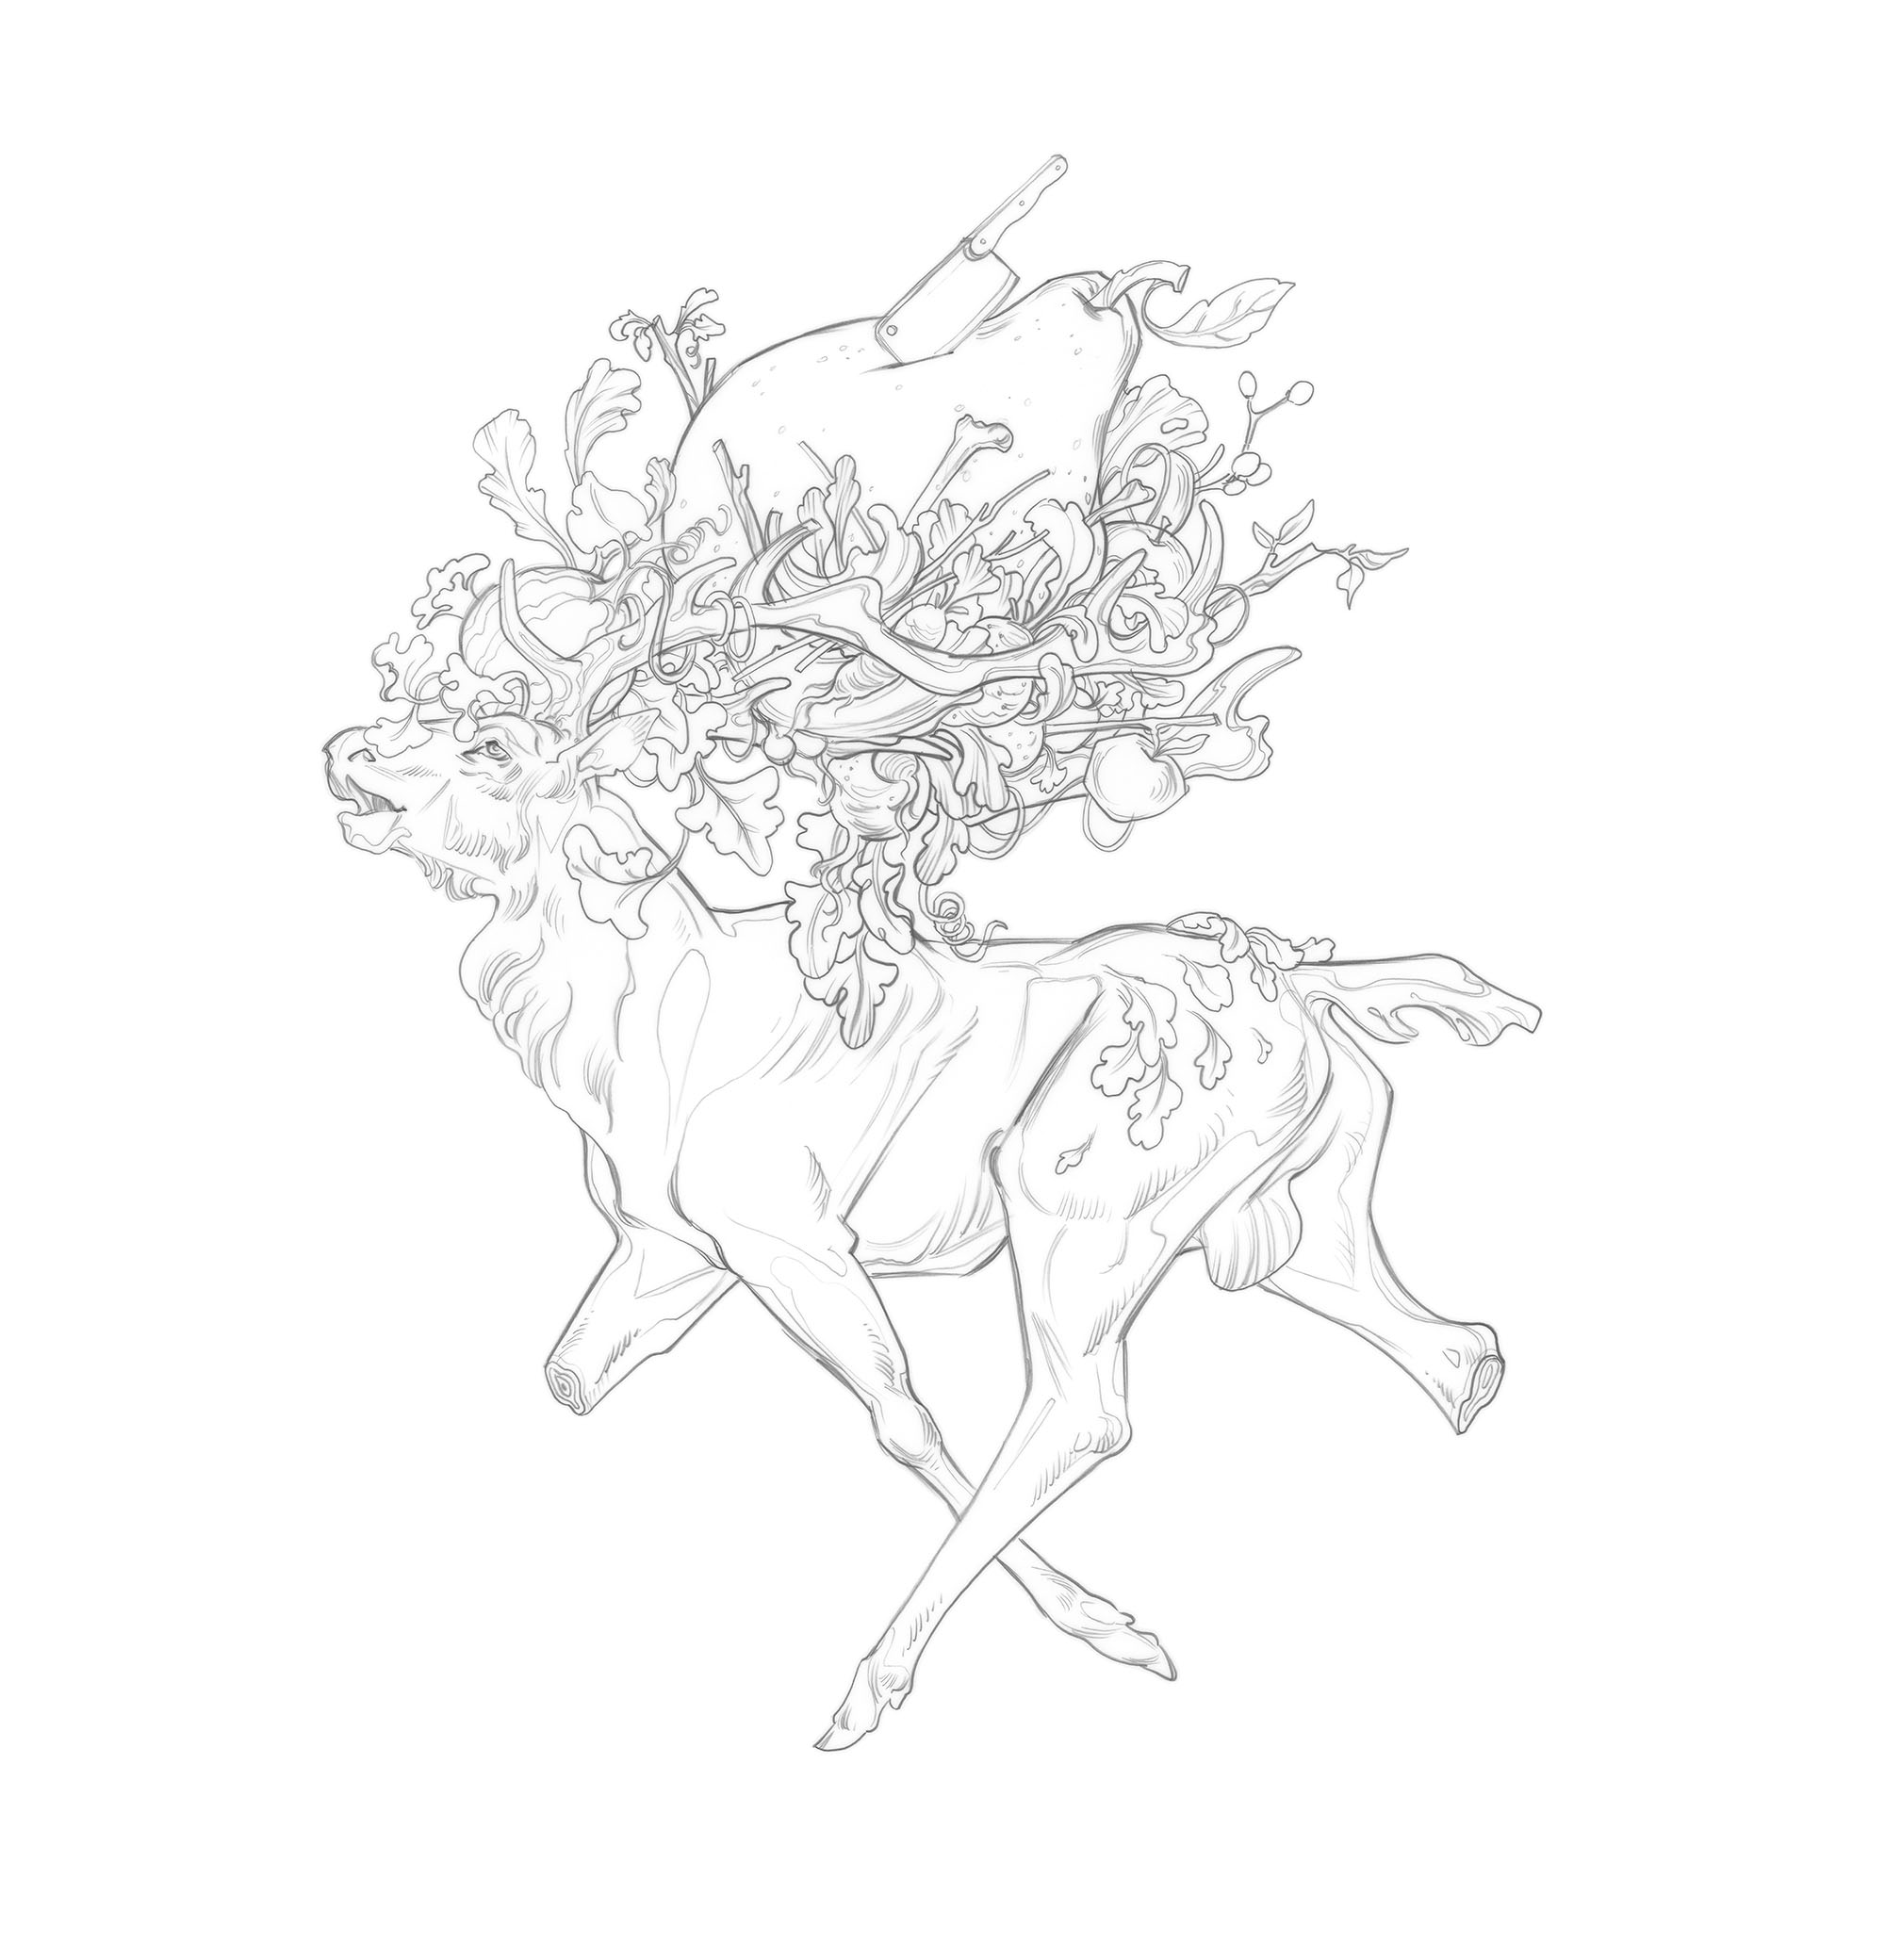 woodenstag_frontcover_whitedrawing_JAWCooper copy.jpg